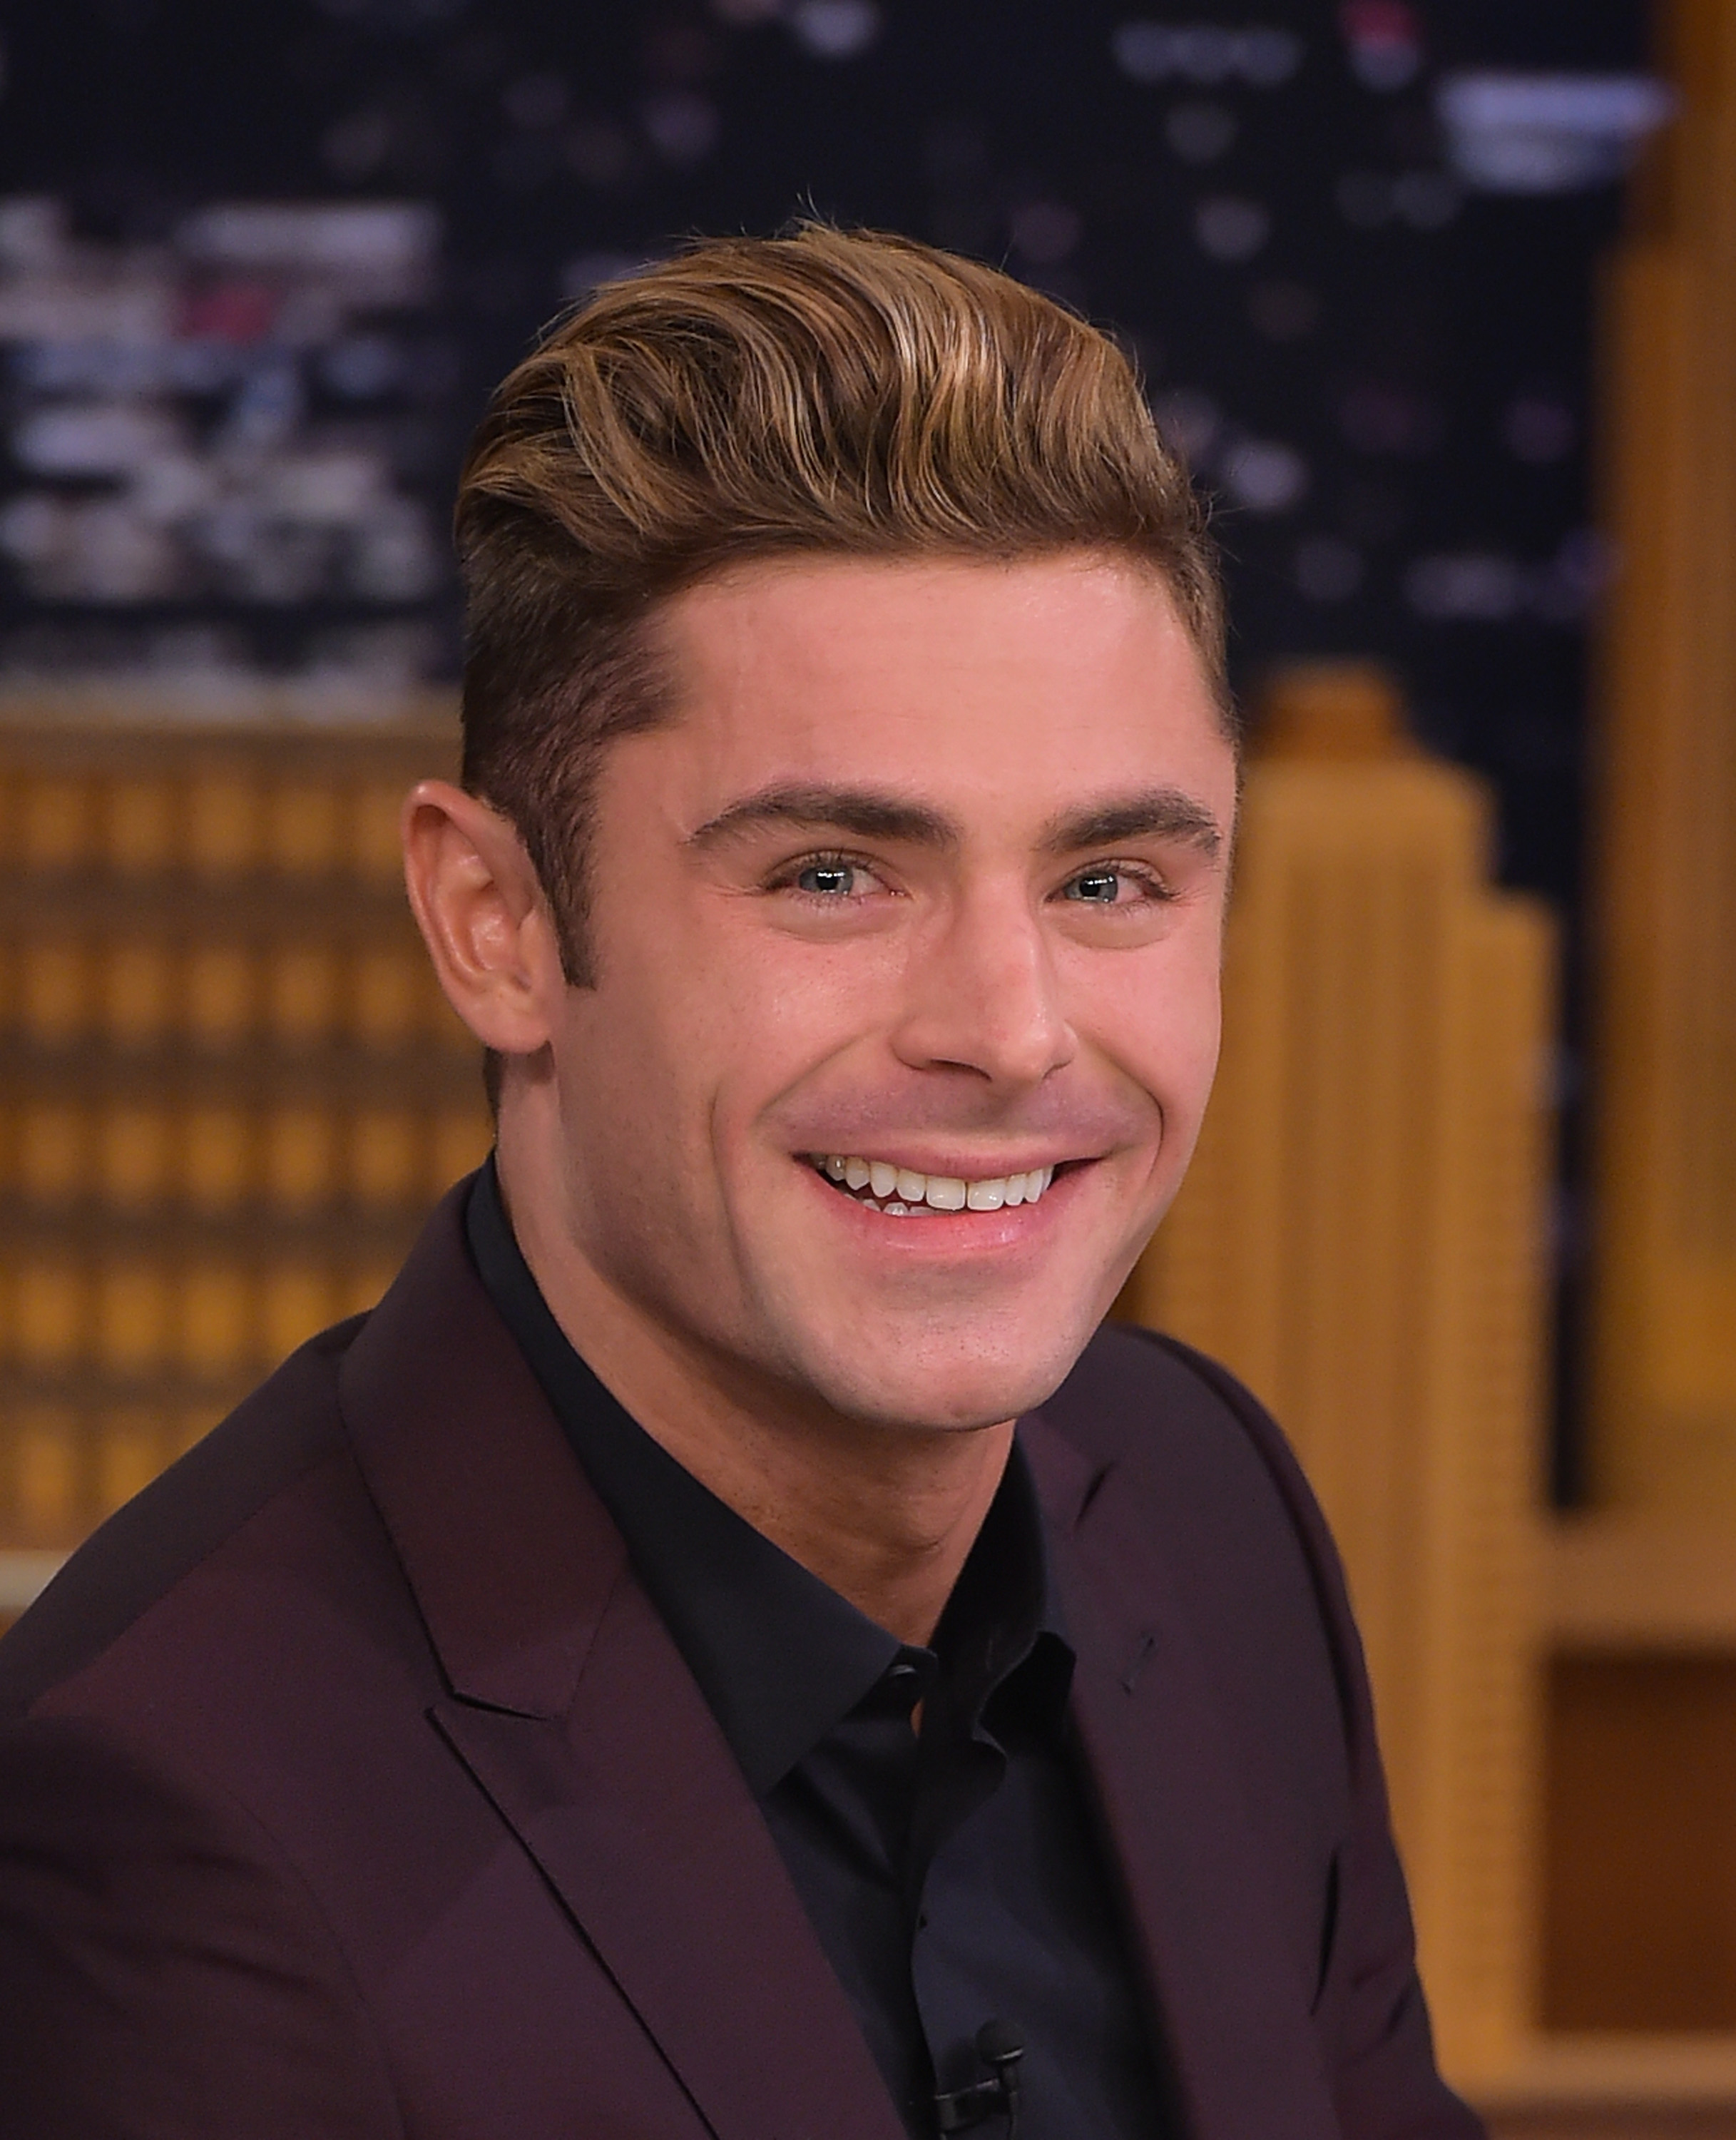 Zac Efron on Jimmy Fallon 2016